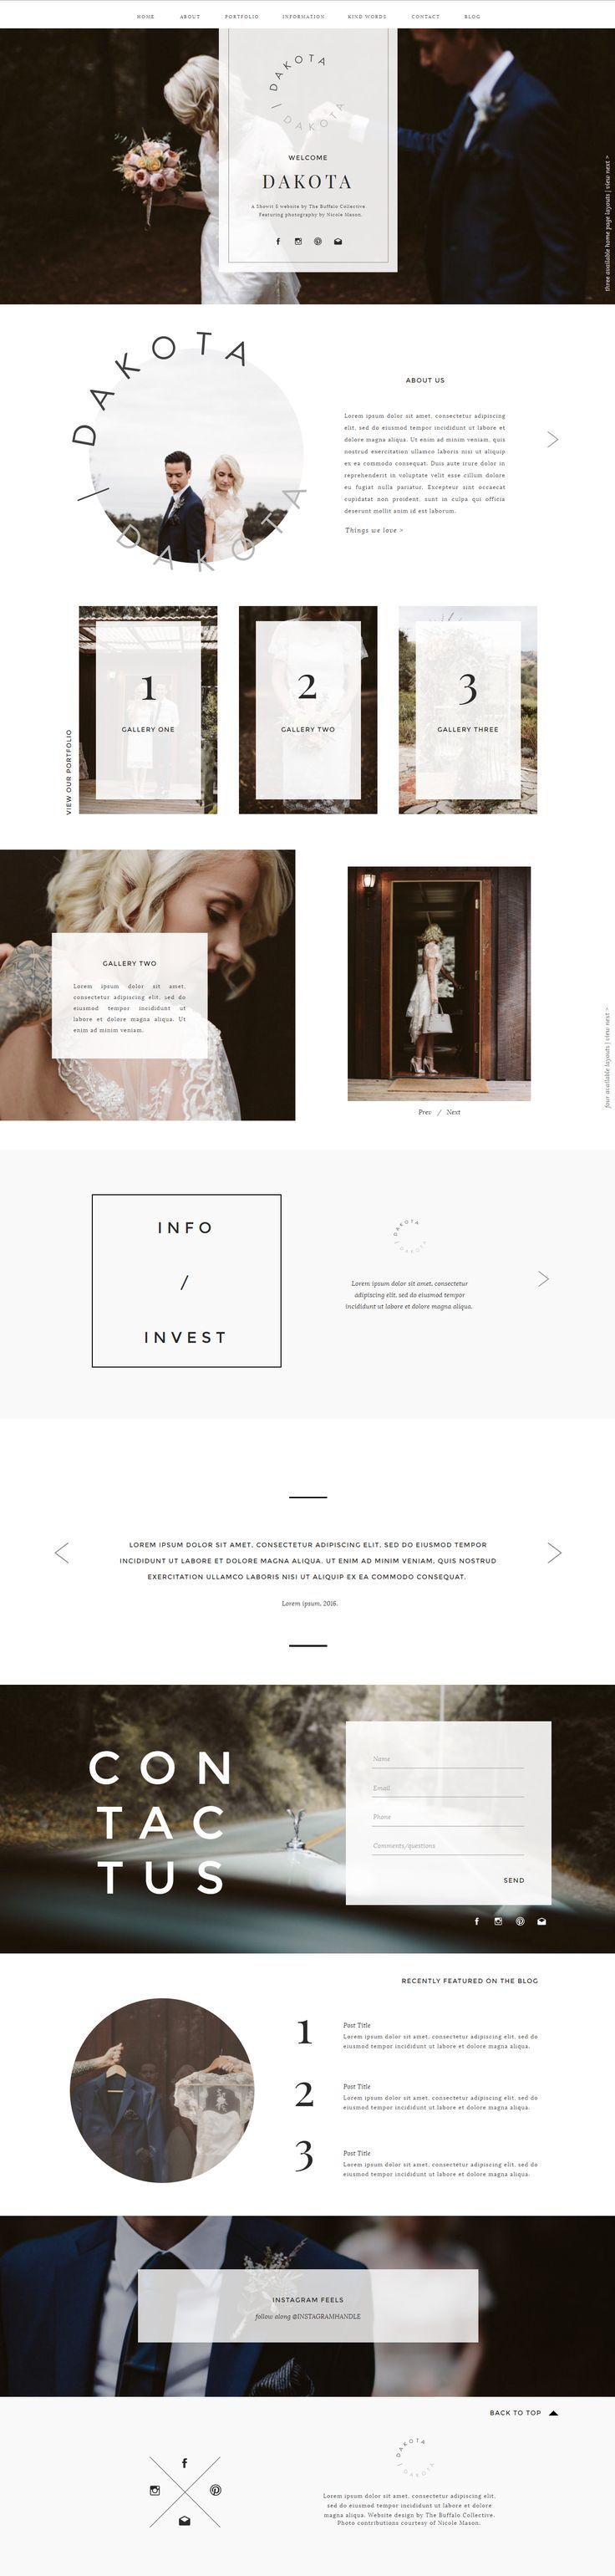 Beautiful and simple site design.